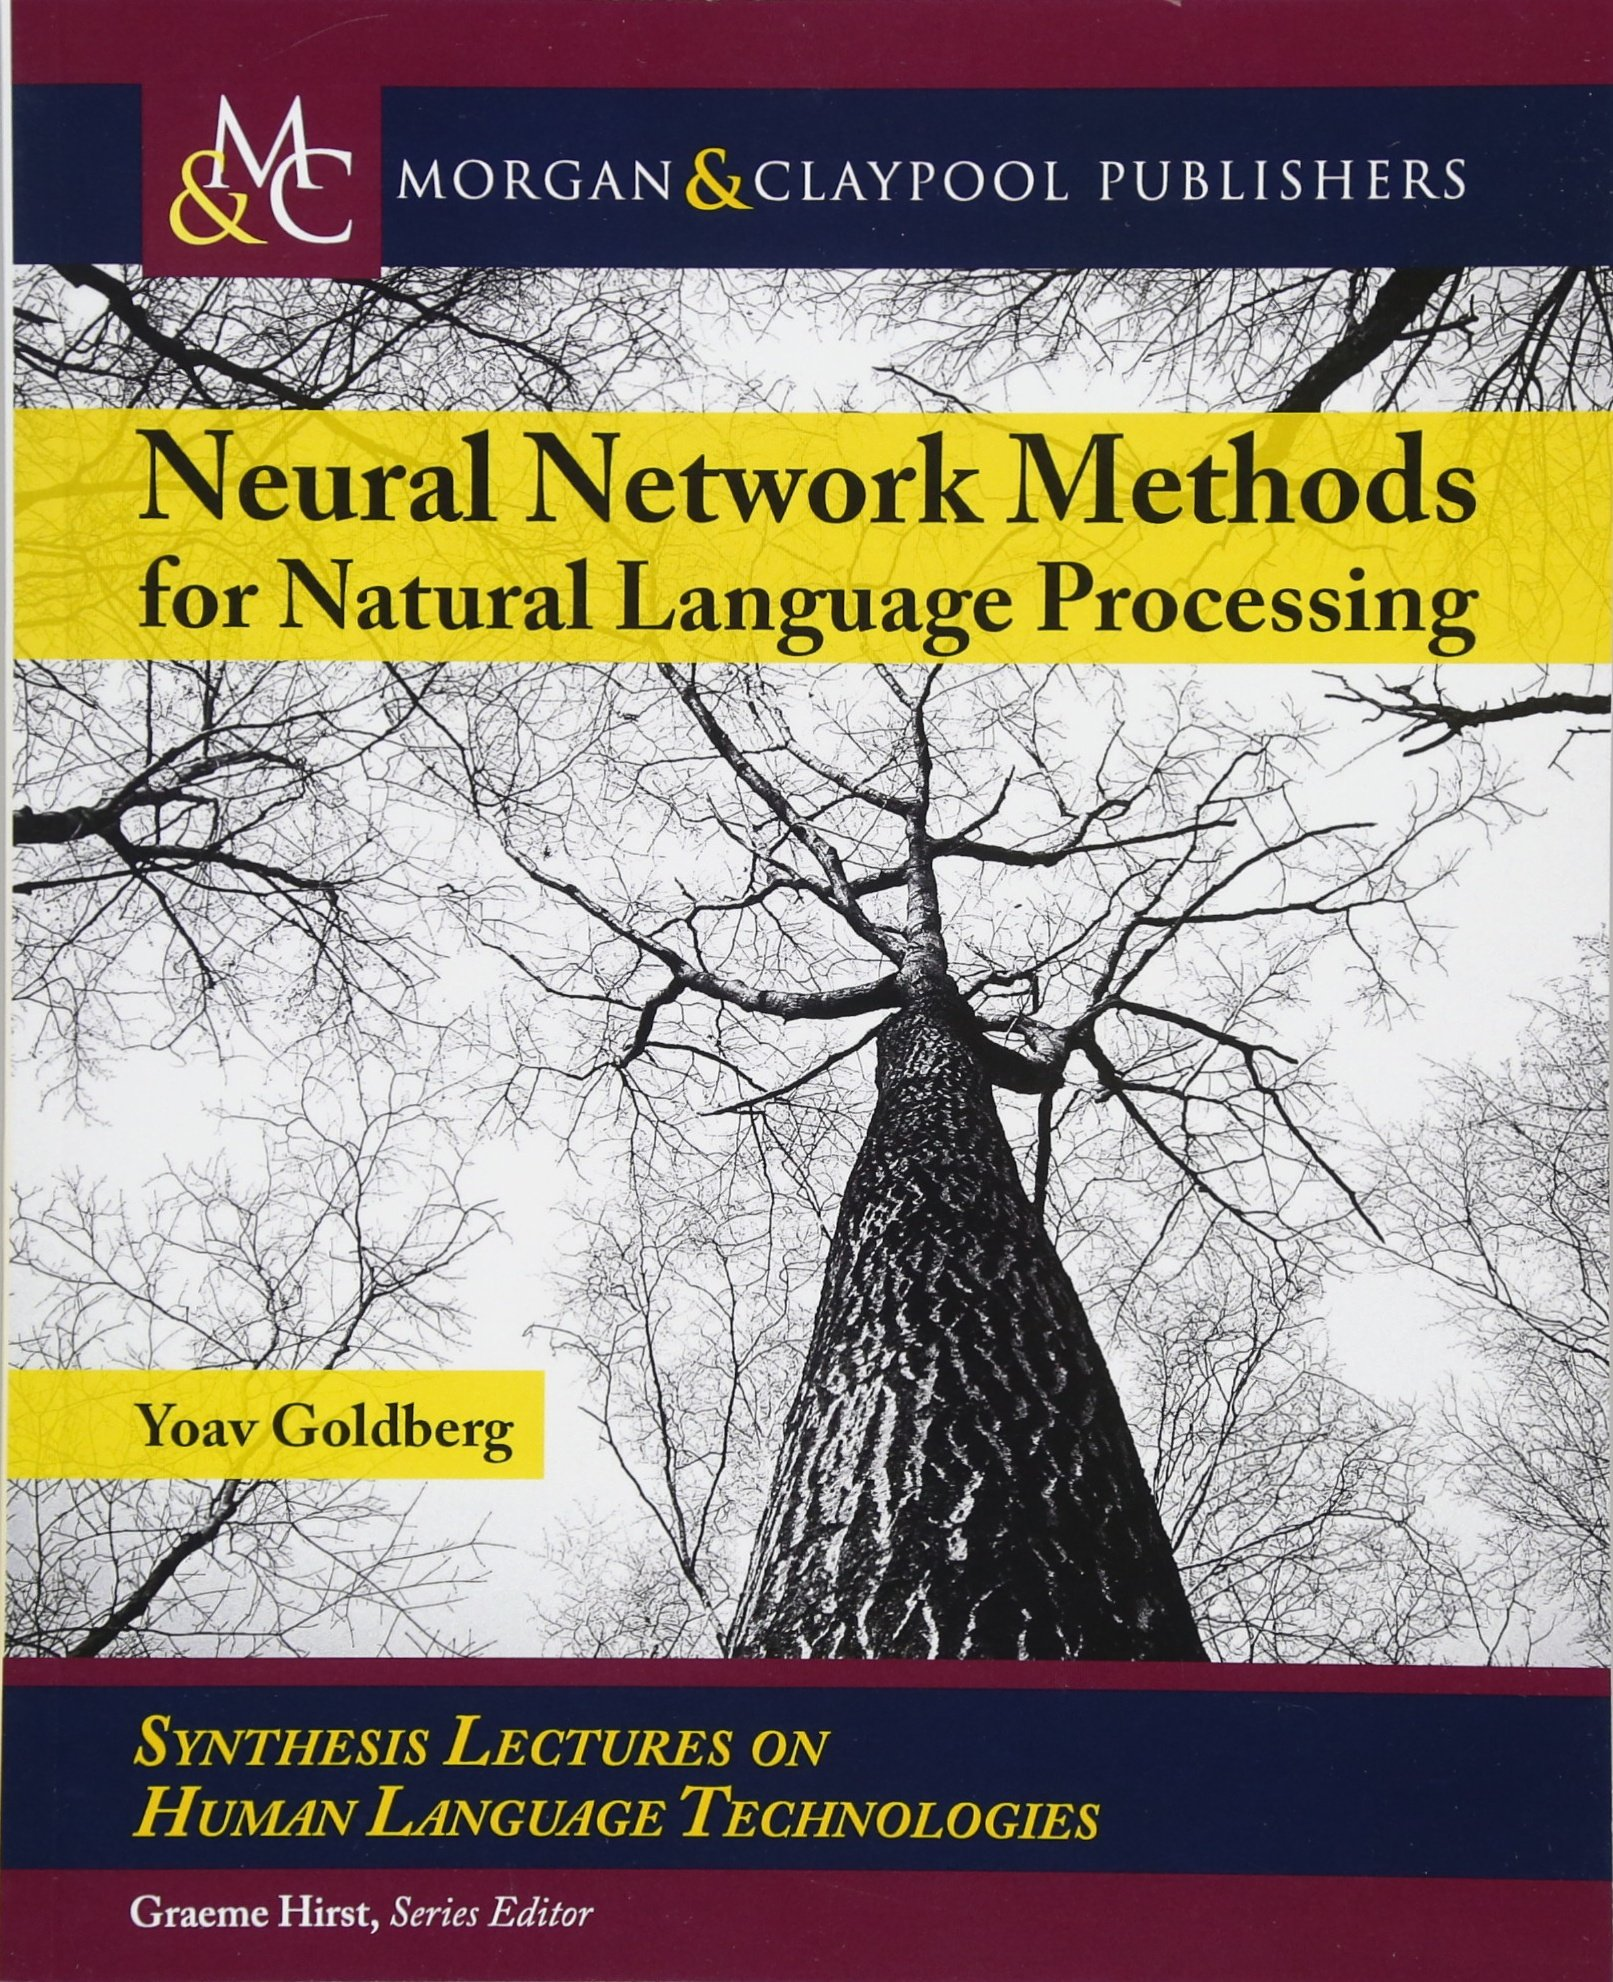 Neural Network Methods in Natural Language Processing (Synthesis Lectures on Human Language Technologies) by Morgan & Claypool Publishers